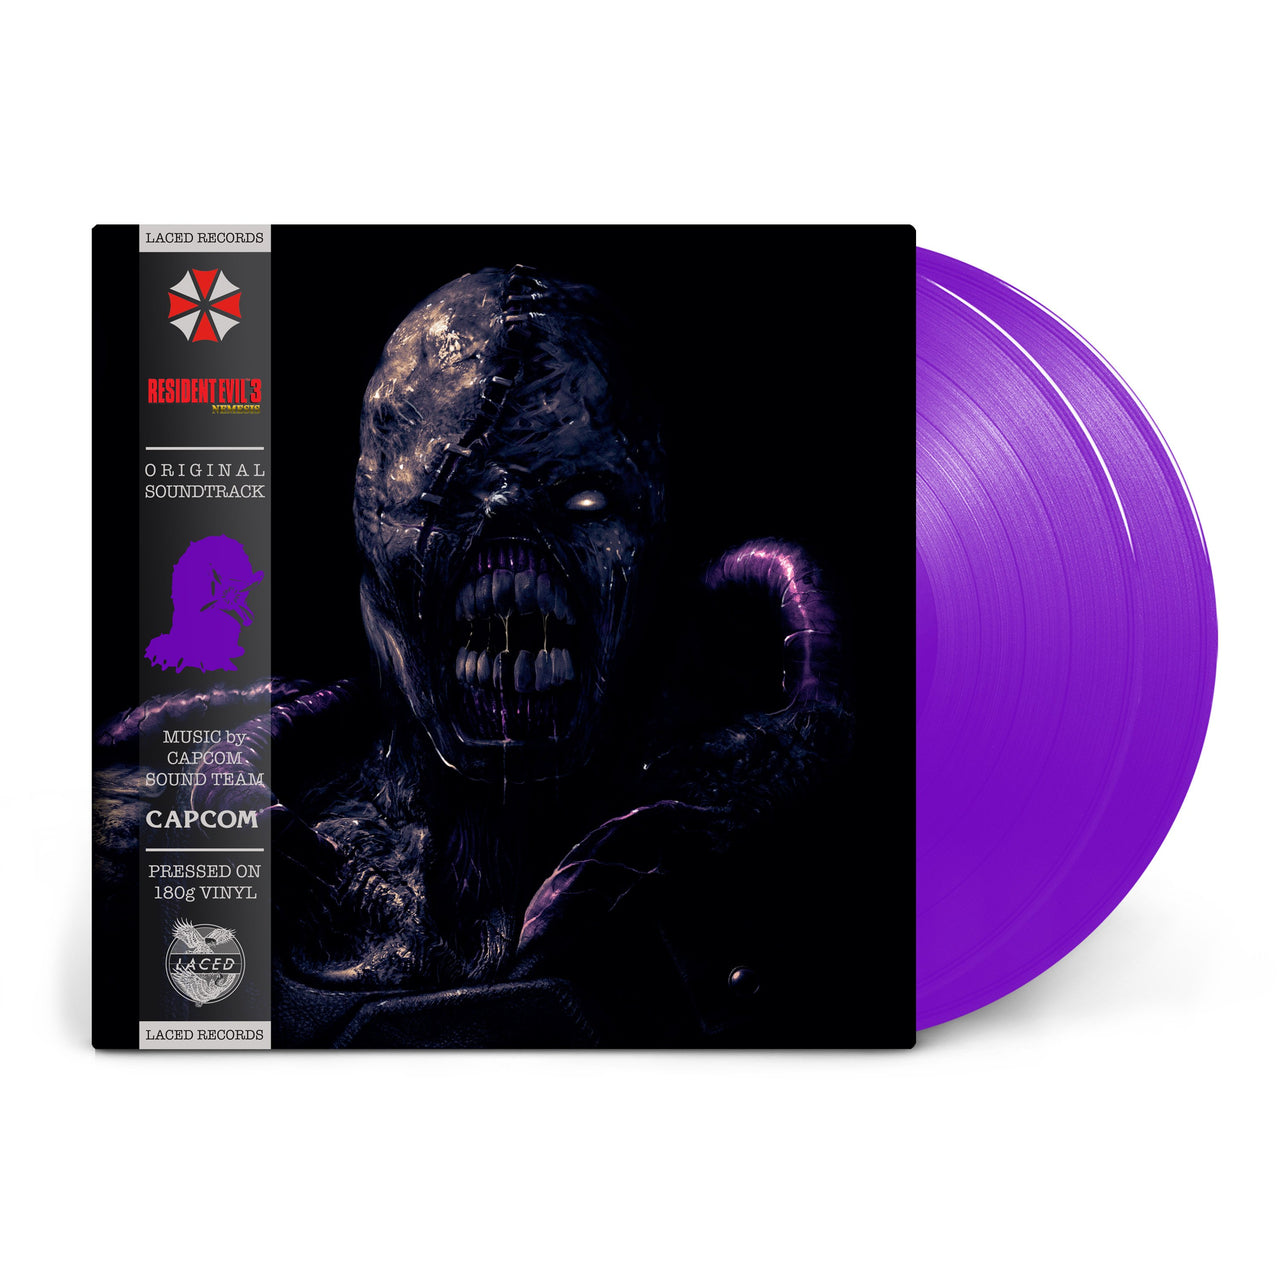 Resident Evil 3: Nemesis (Limited Edition Deluxe Double Vinyl)